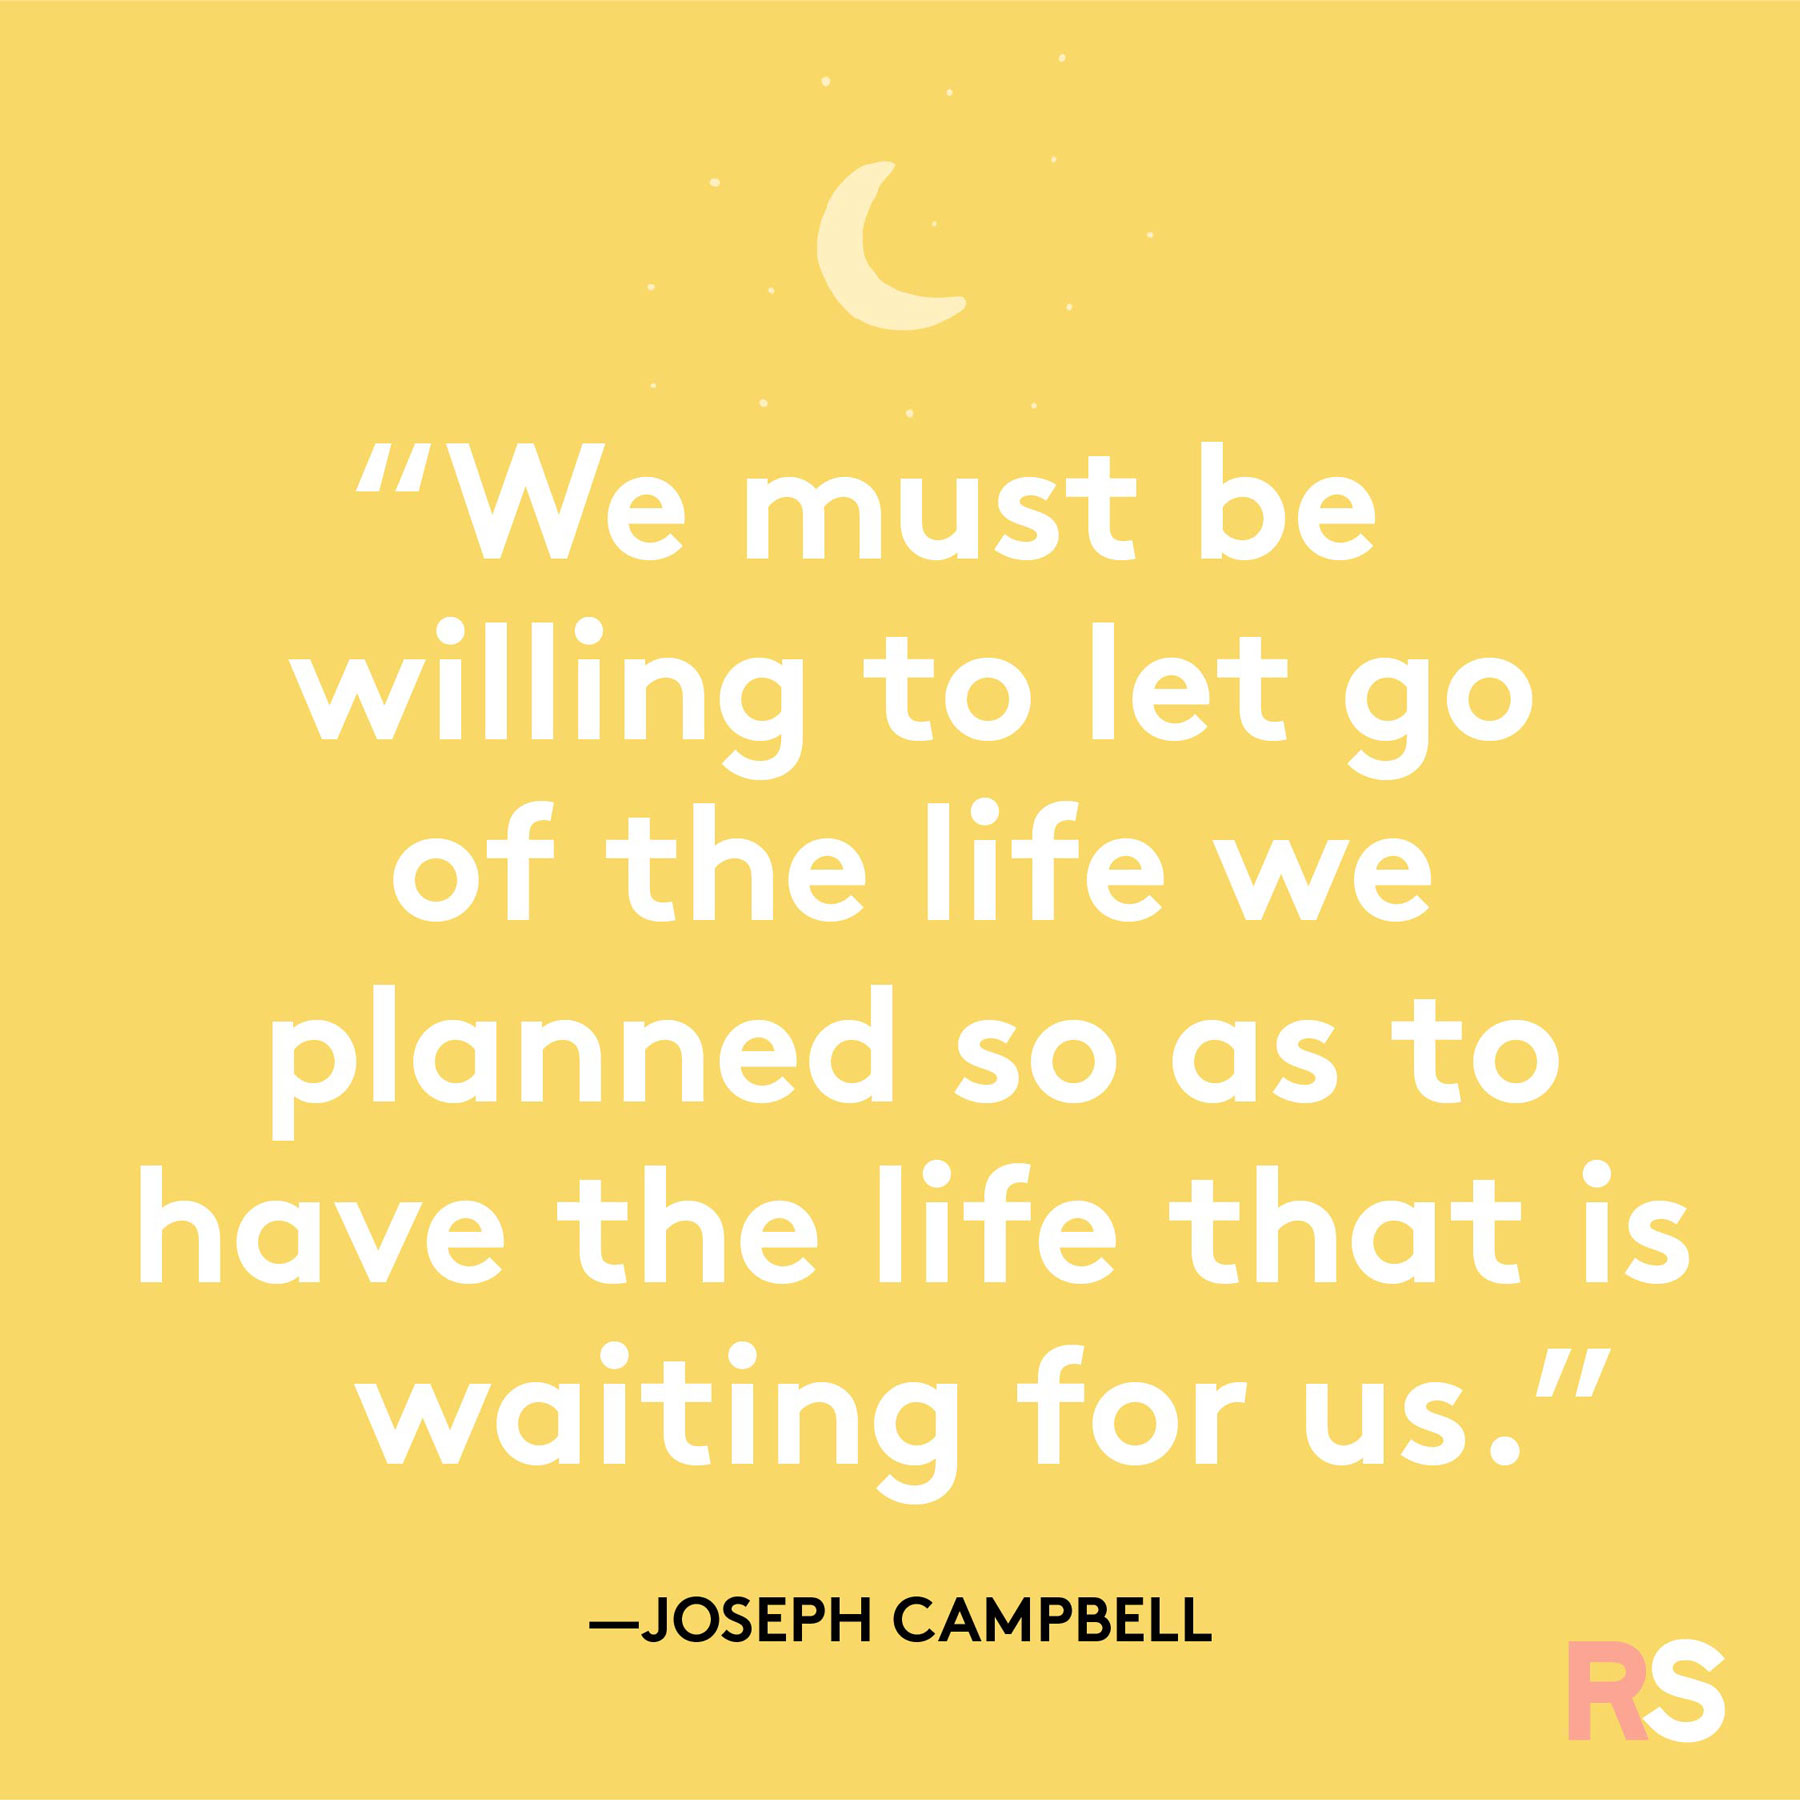 Positive motivating quotes, captions, messages – Joseph Campbell quote